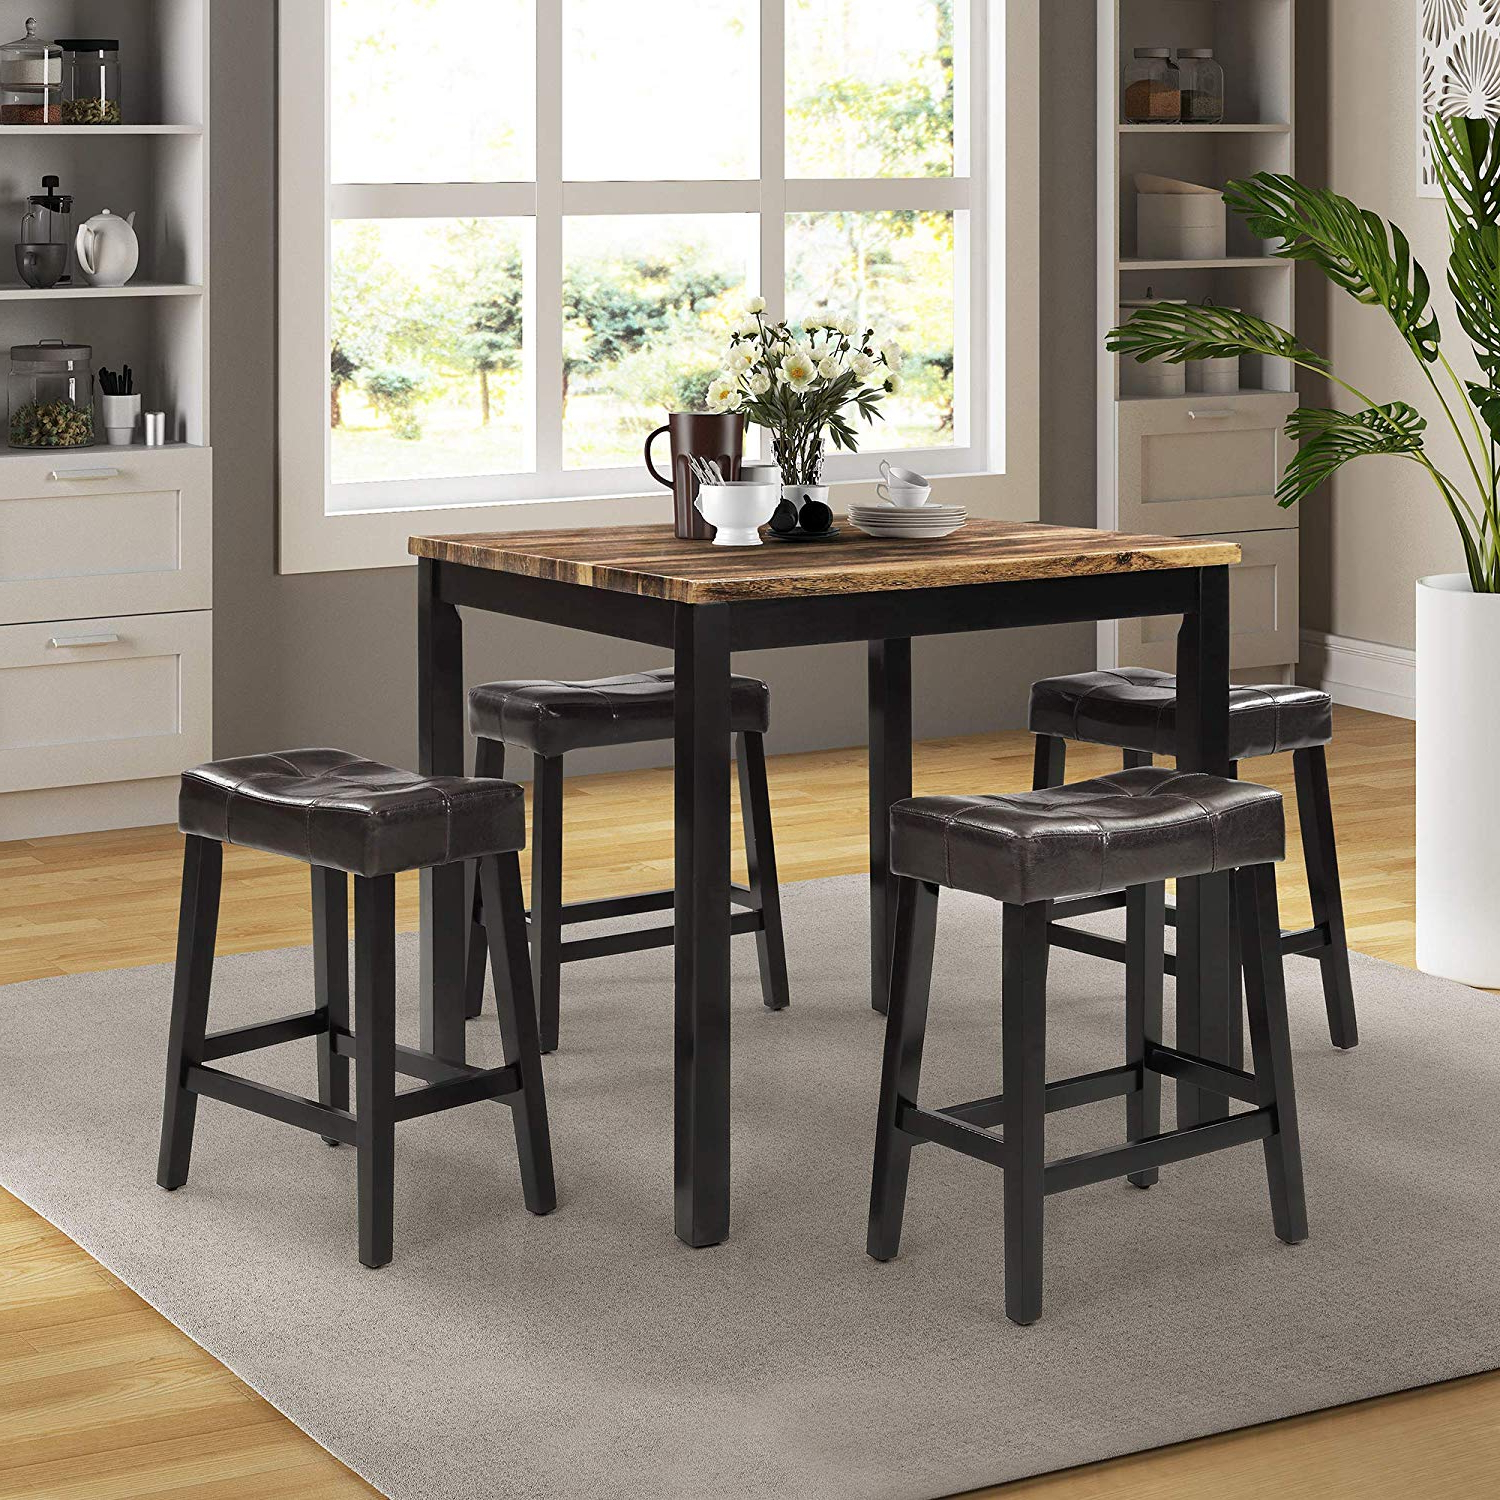 Most Recent Lokesi Kitchen Table Set, 5 Pieces Faux Marble Top Counter Height Dining  Table Set With 4 Stools (Brown) Inside Faux Marble Finish Metal Contemporary Dining Tables (View 17 of 25)